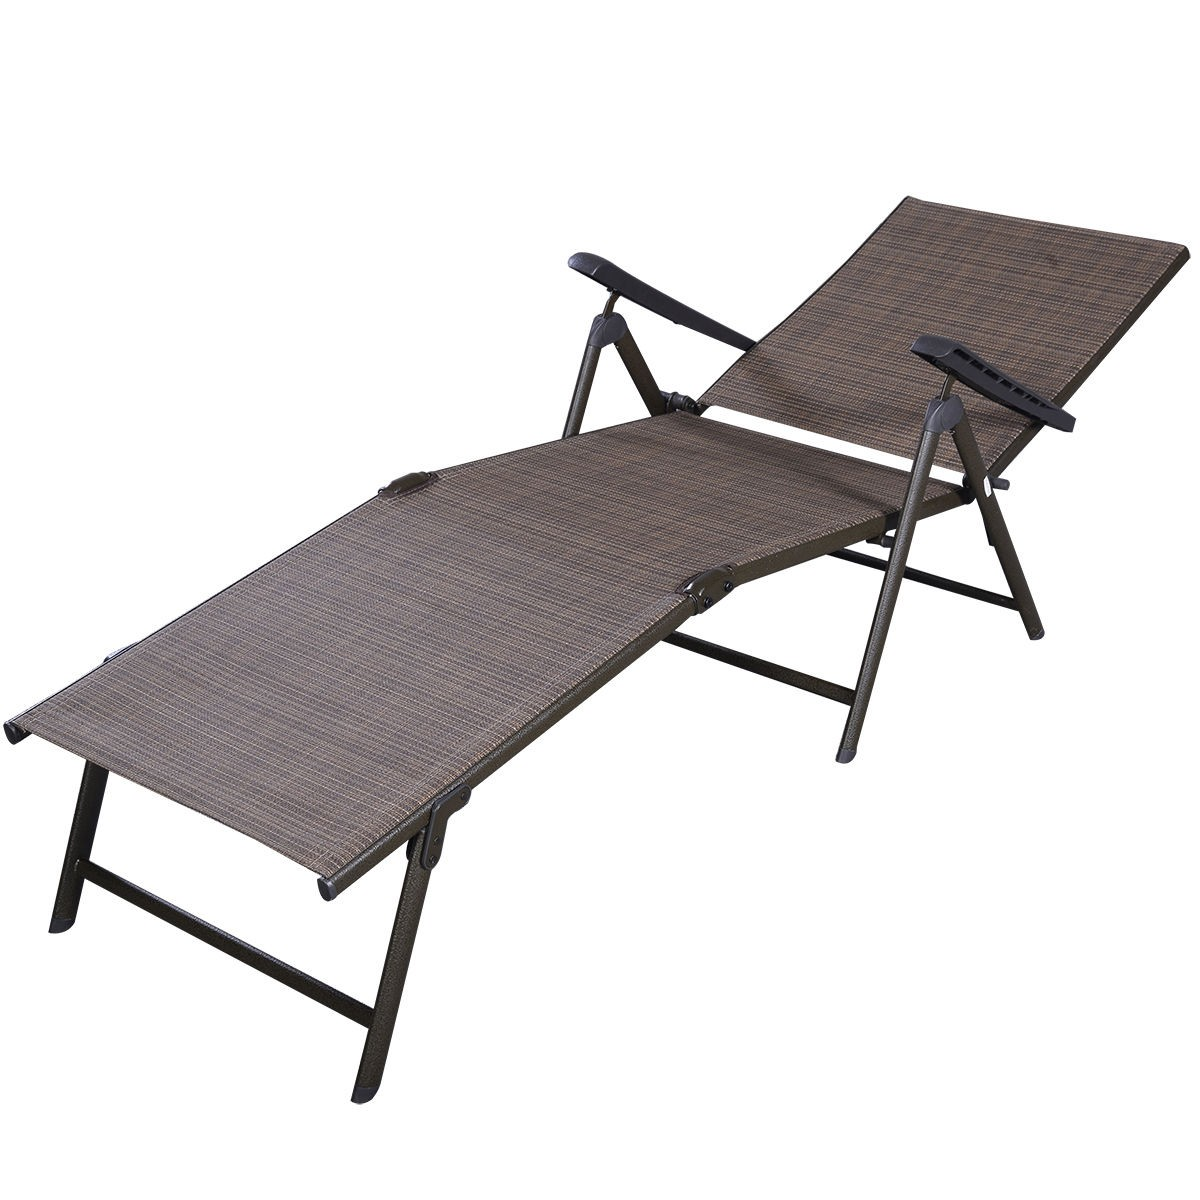 Patio furniture textilene adjustable pool chaise lounge for Outdoor lounge furniture